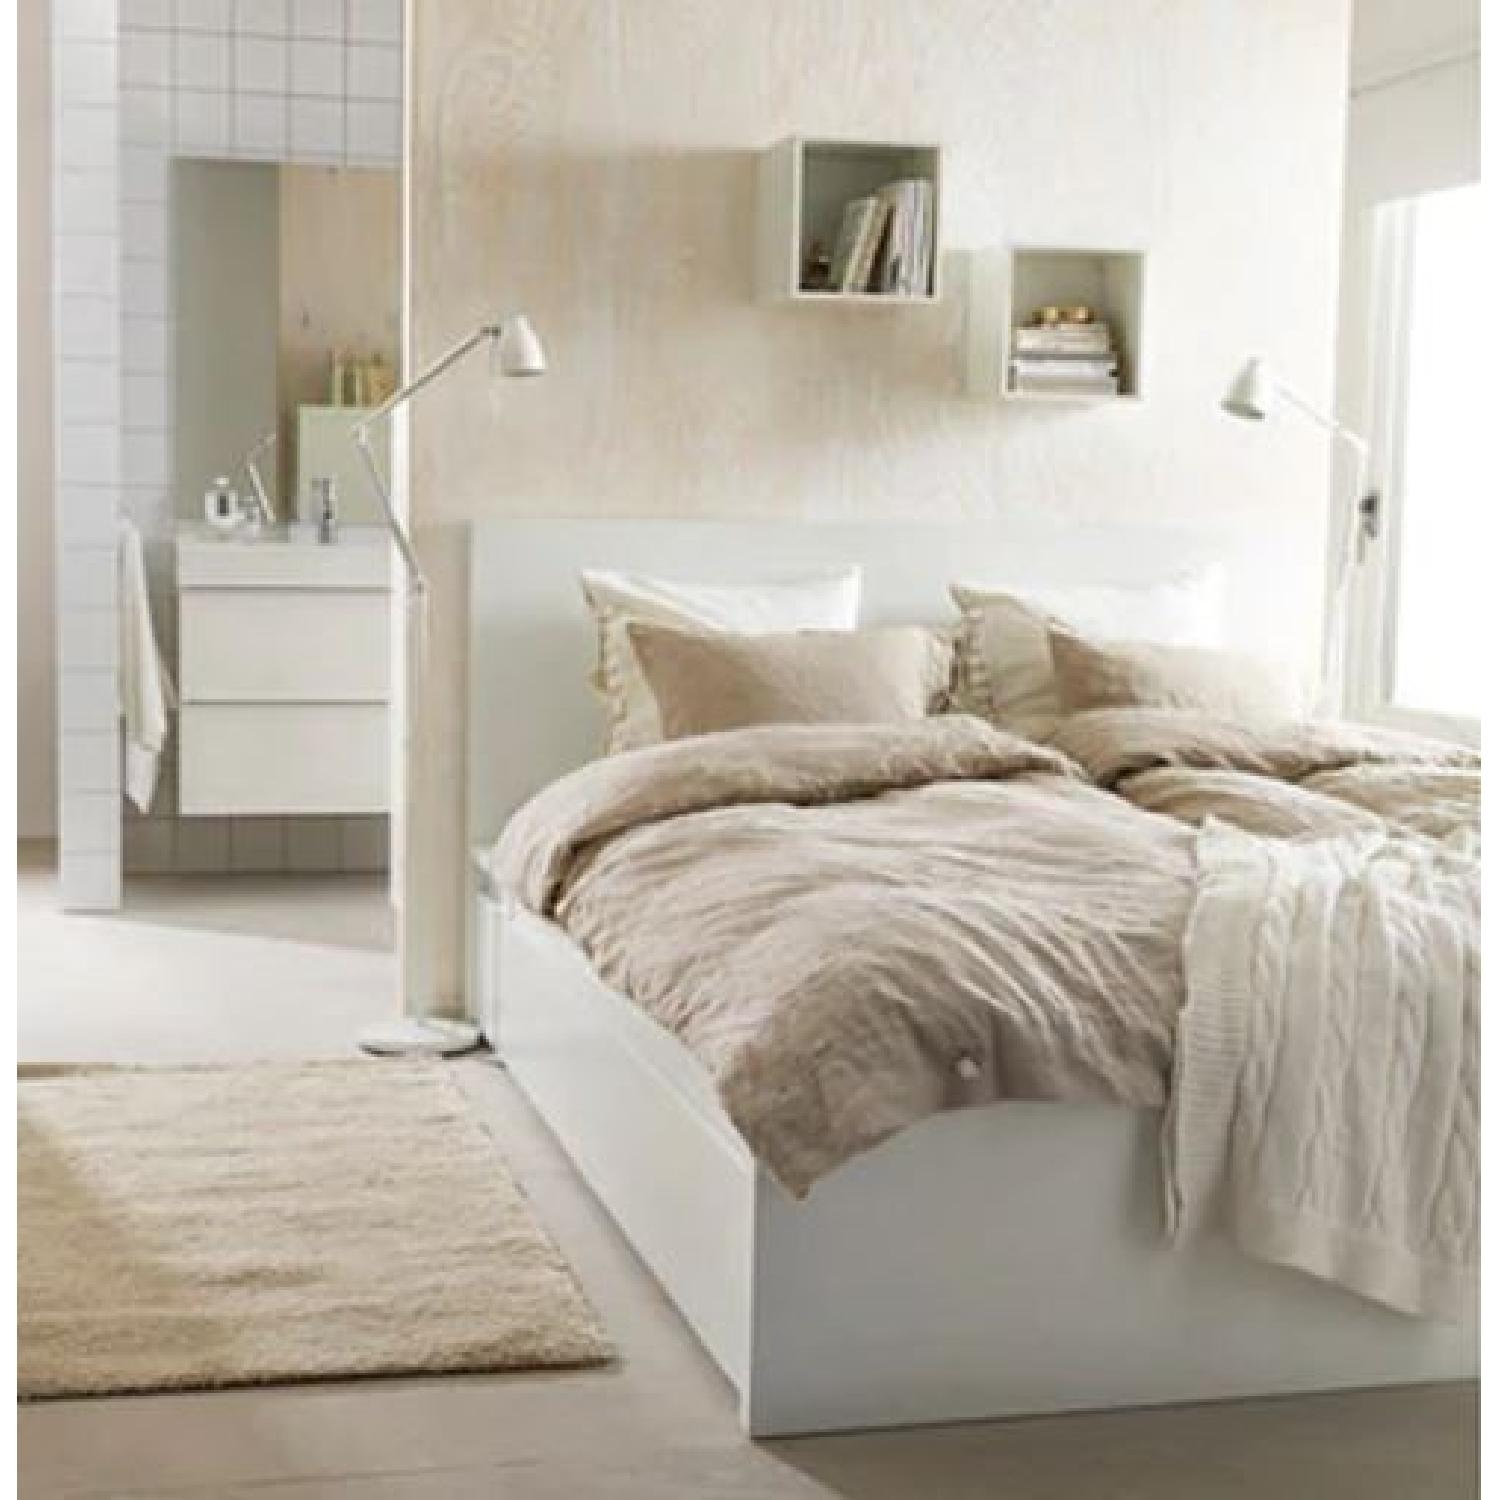 Ikea Malm High White Bed Frame w/ 4 Storage Boxes - AptDeco